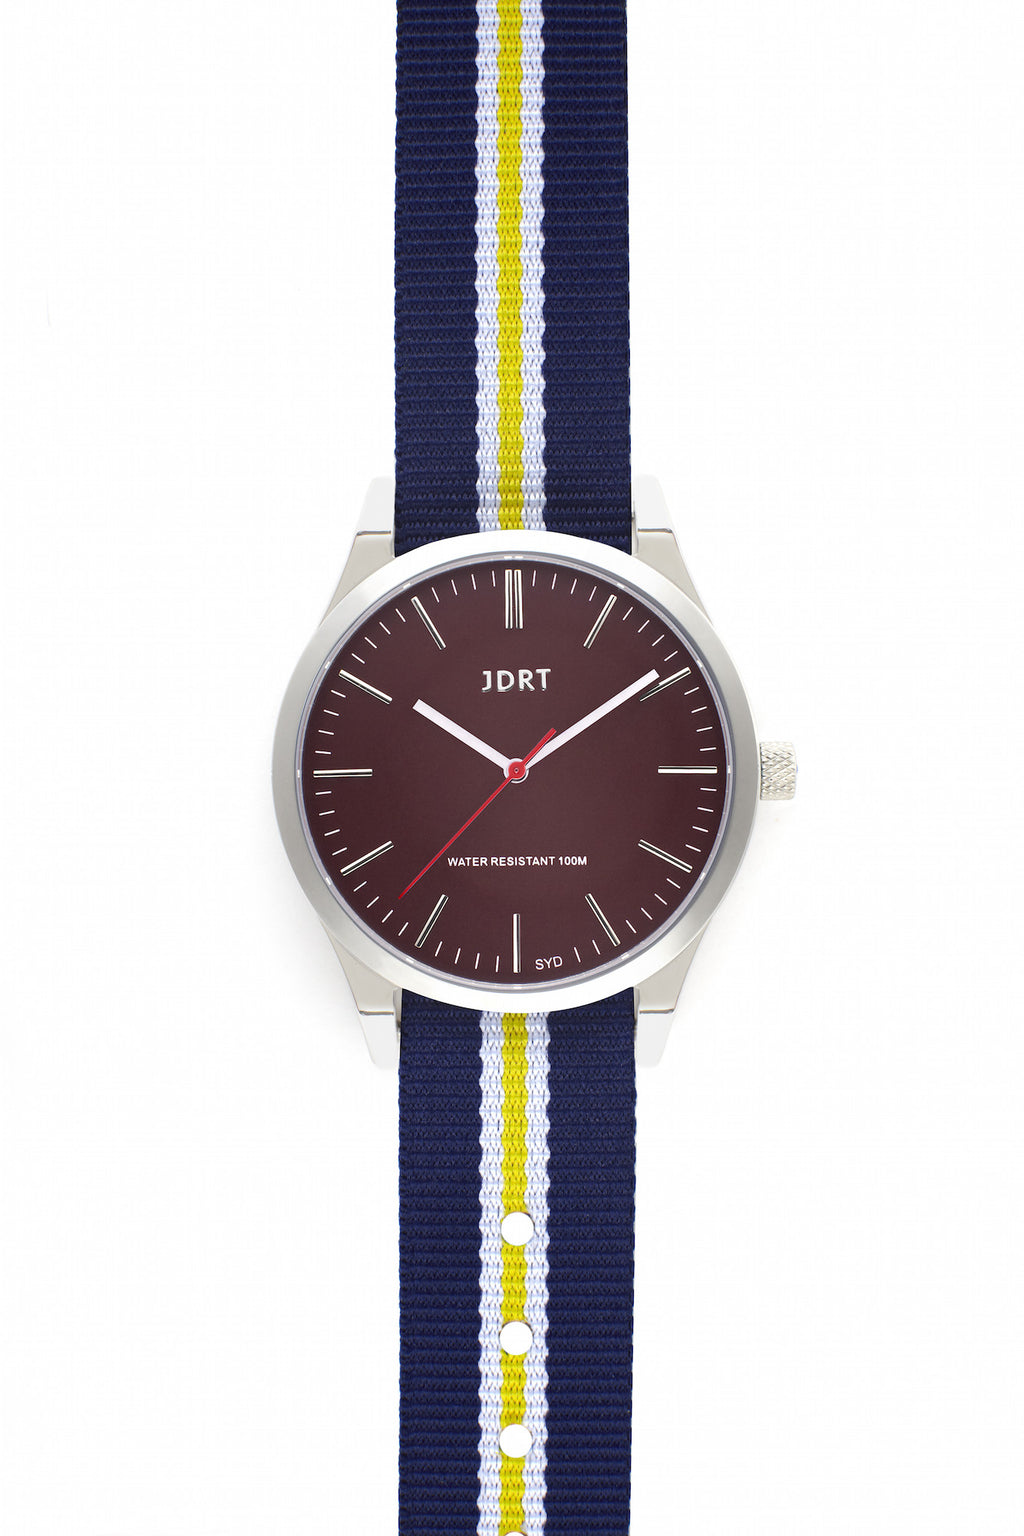 Oxblood Face with Paddington NATO Watch Band